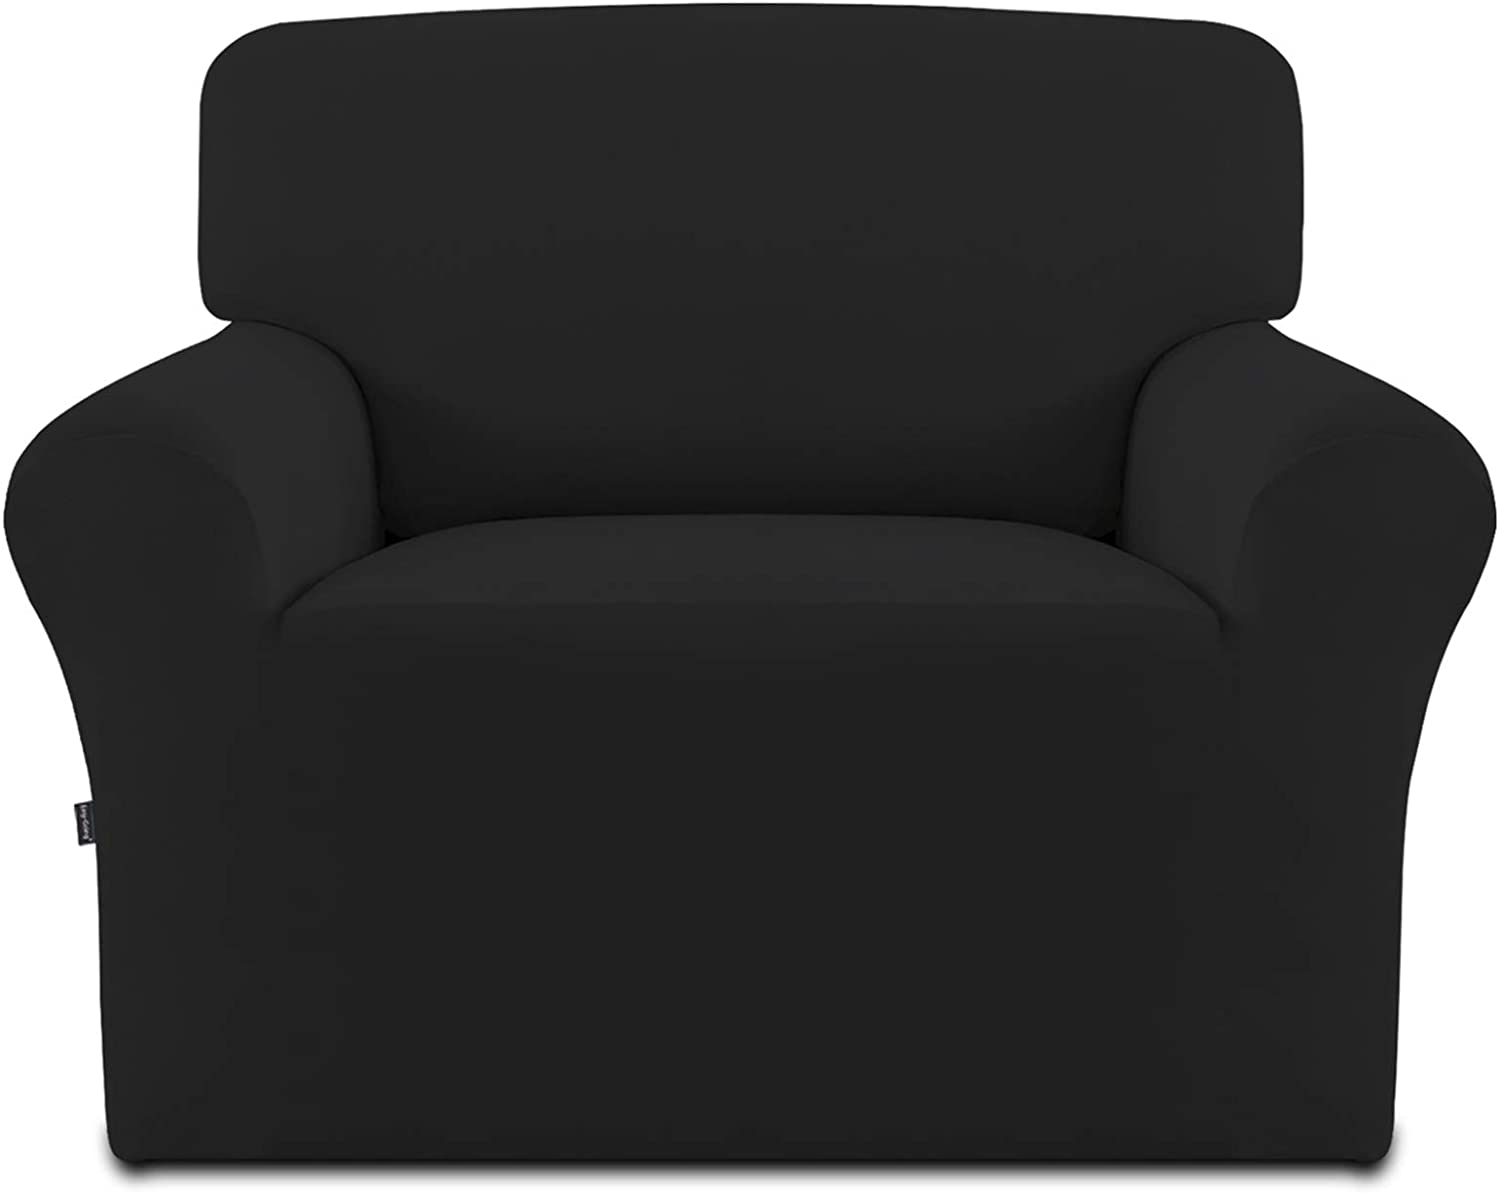 Easy-Going Fleece Stretch Sofa Slipcover – Spandex Anti-Slip Soft Couch Sofa Cover, Washable Furniture Protector with Anti-Skid Foam and Elastic Bottom for Kids, Pets(Chair,Black)